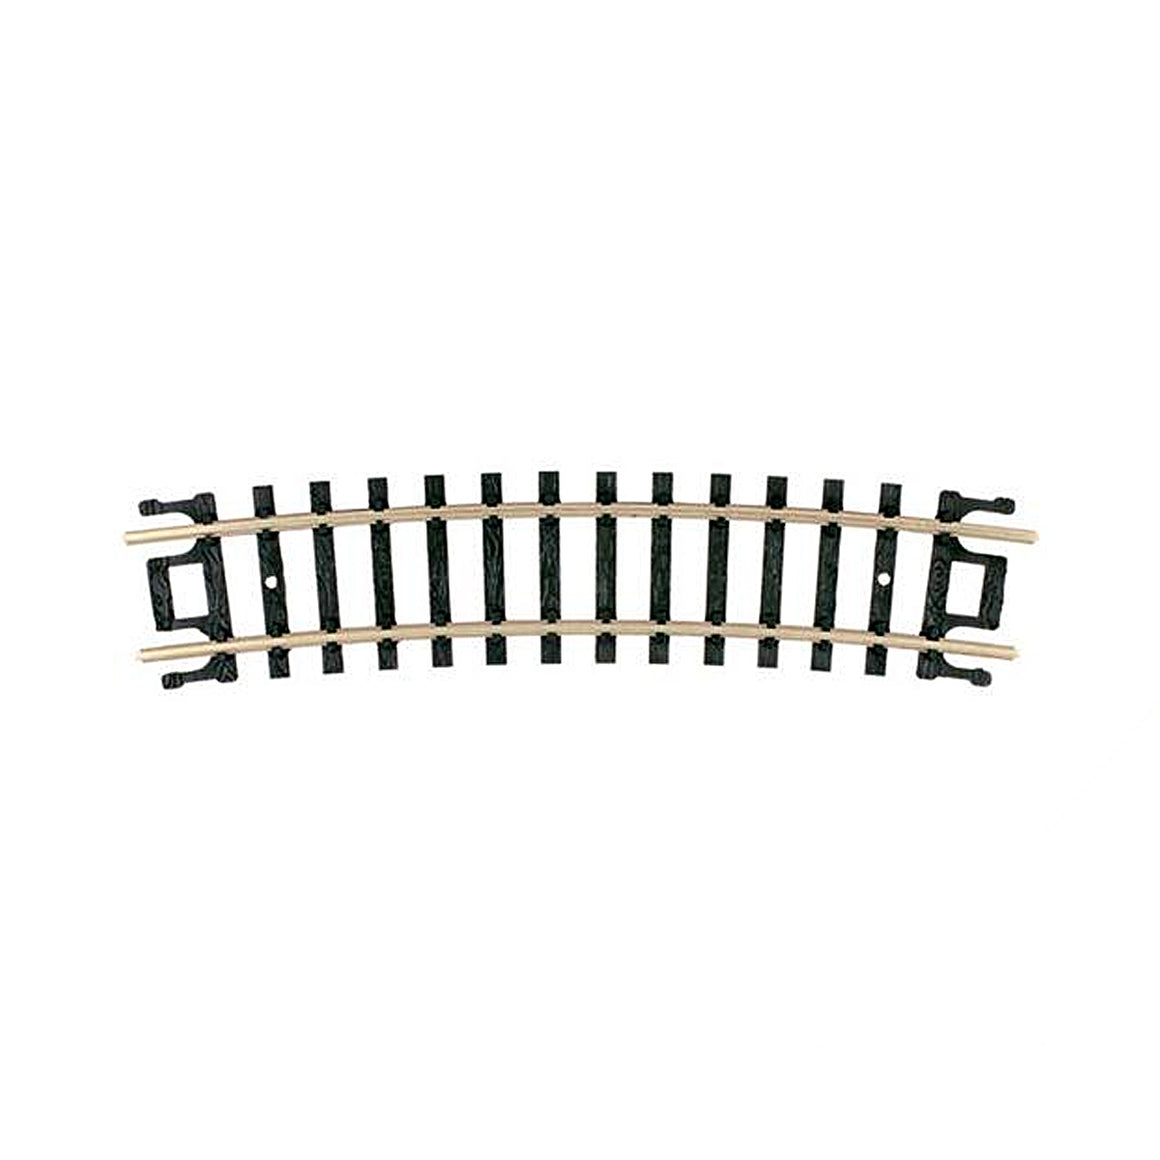 N Scale: Code 80 Snap Track - Curve Half Sections